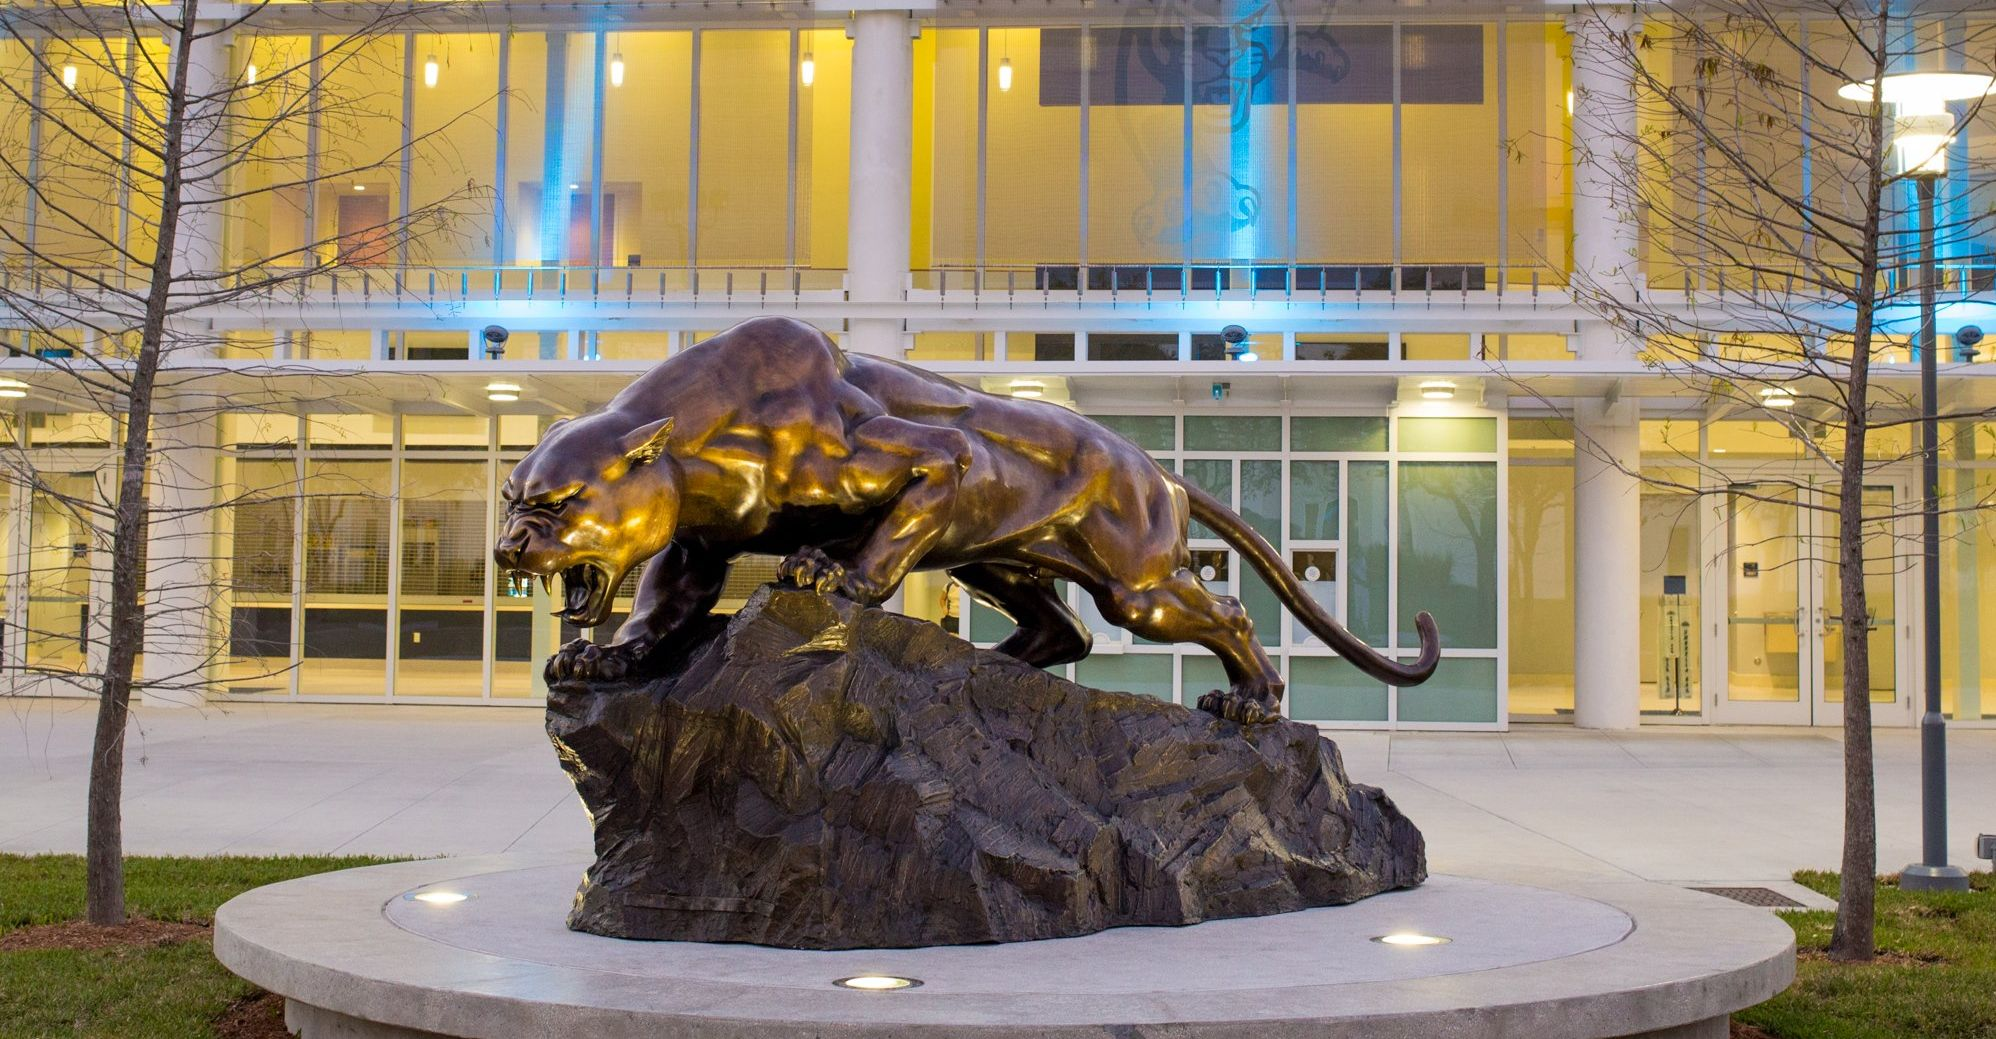 Florida International University Revenue Bond Programs